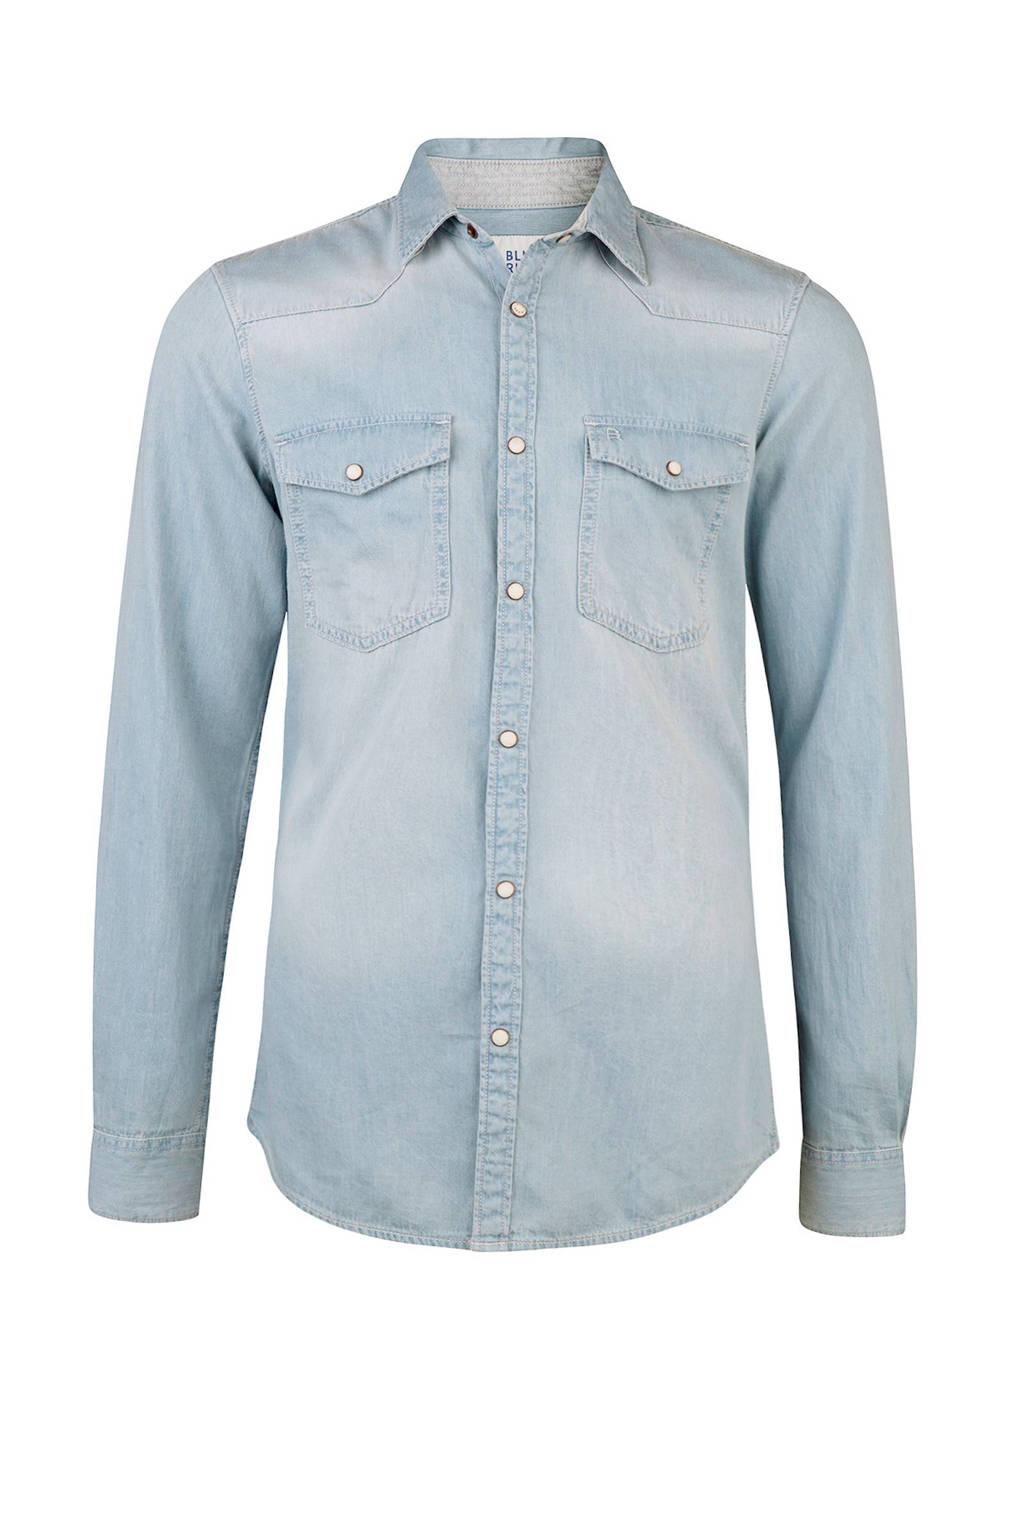 Spijkerstof Overhemd.We Fashion Blue Ridge Denim Overhemd Wehkamp